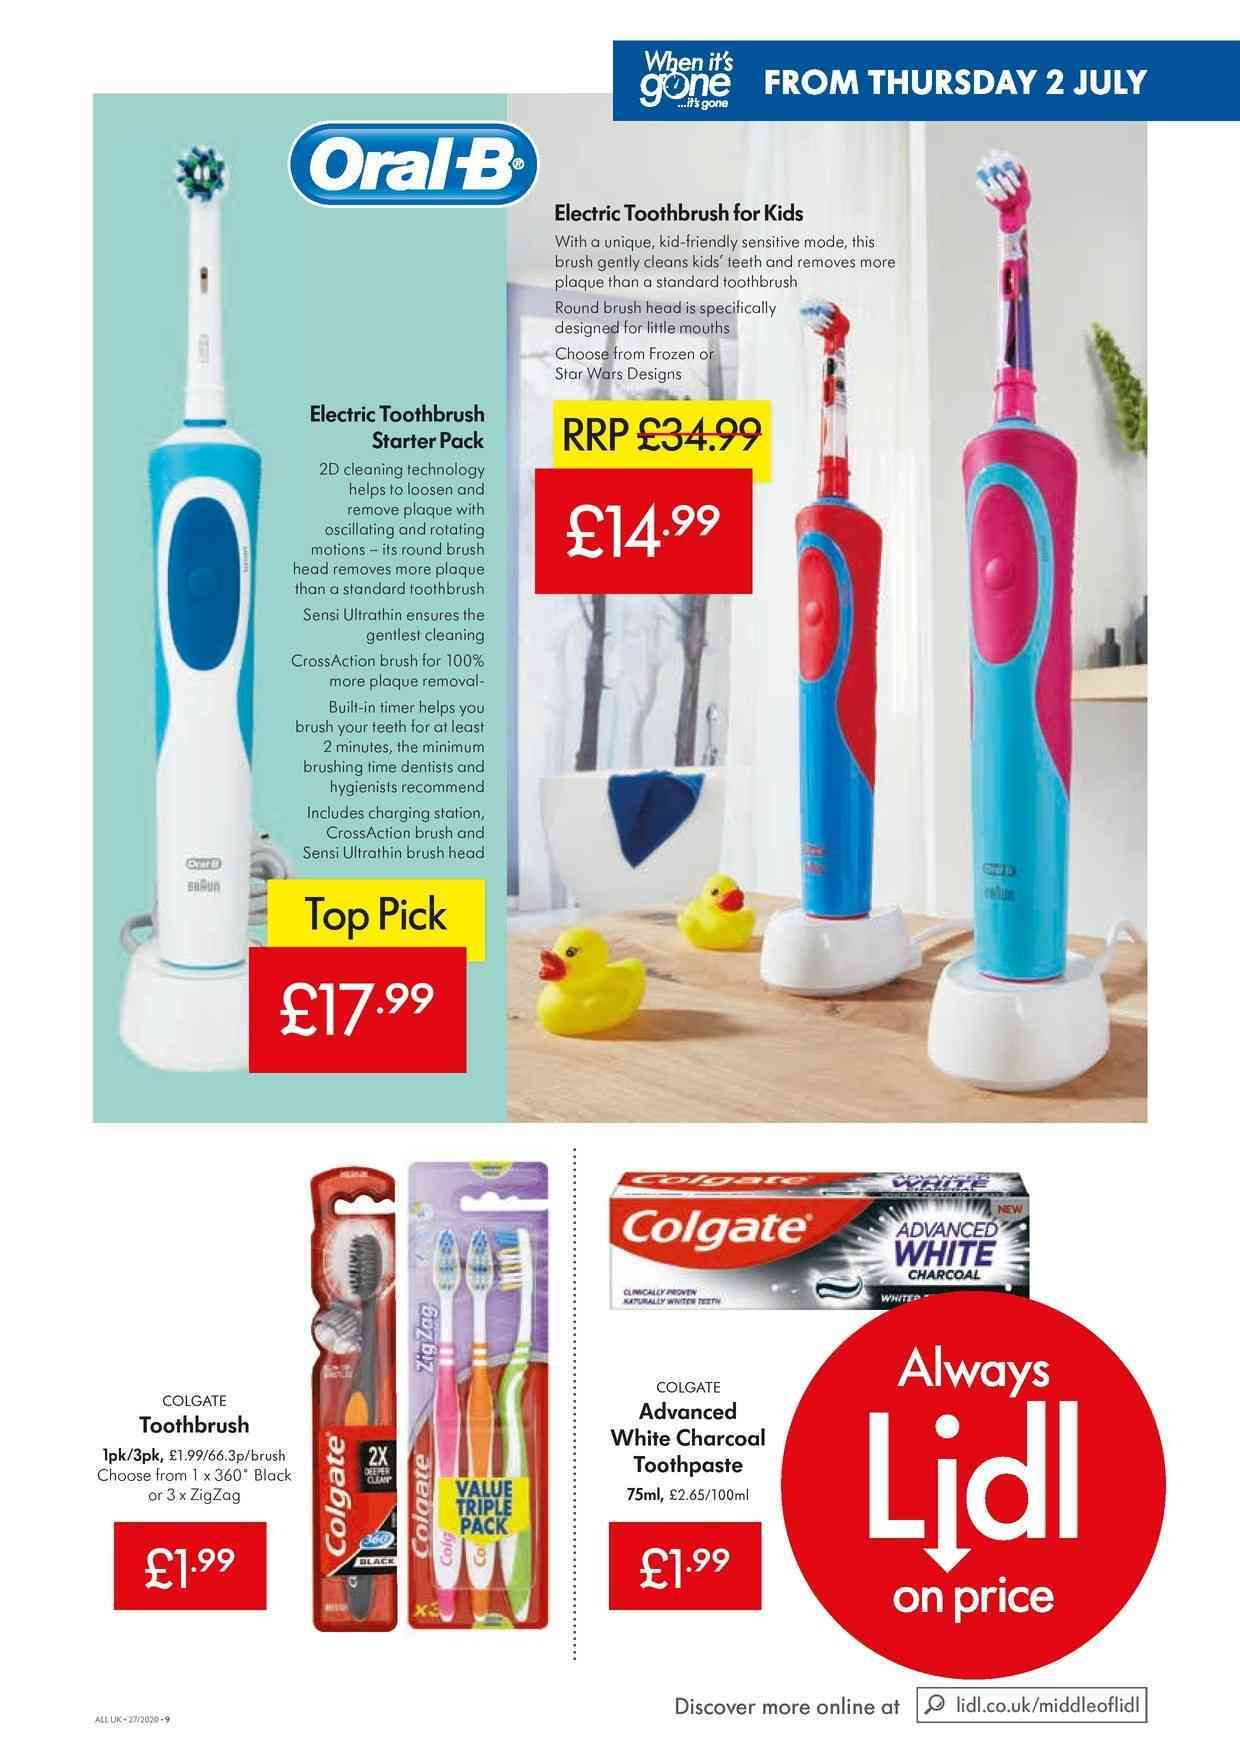 Electric Toothbrush offers in Manchester: prices in store